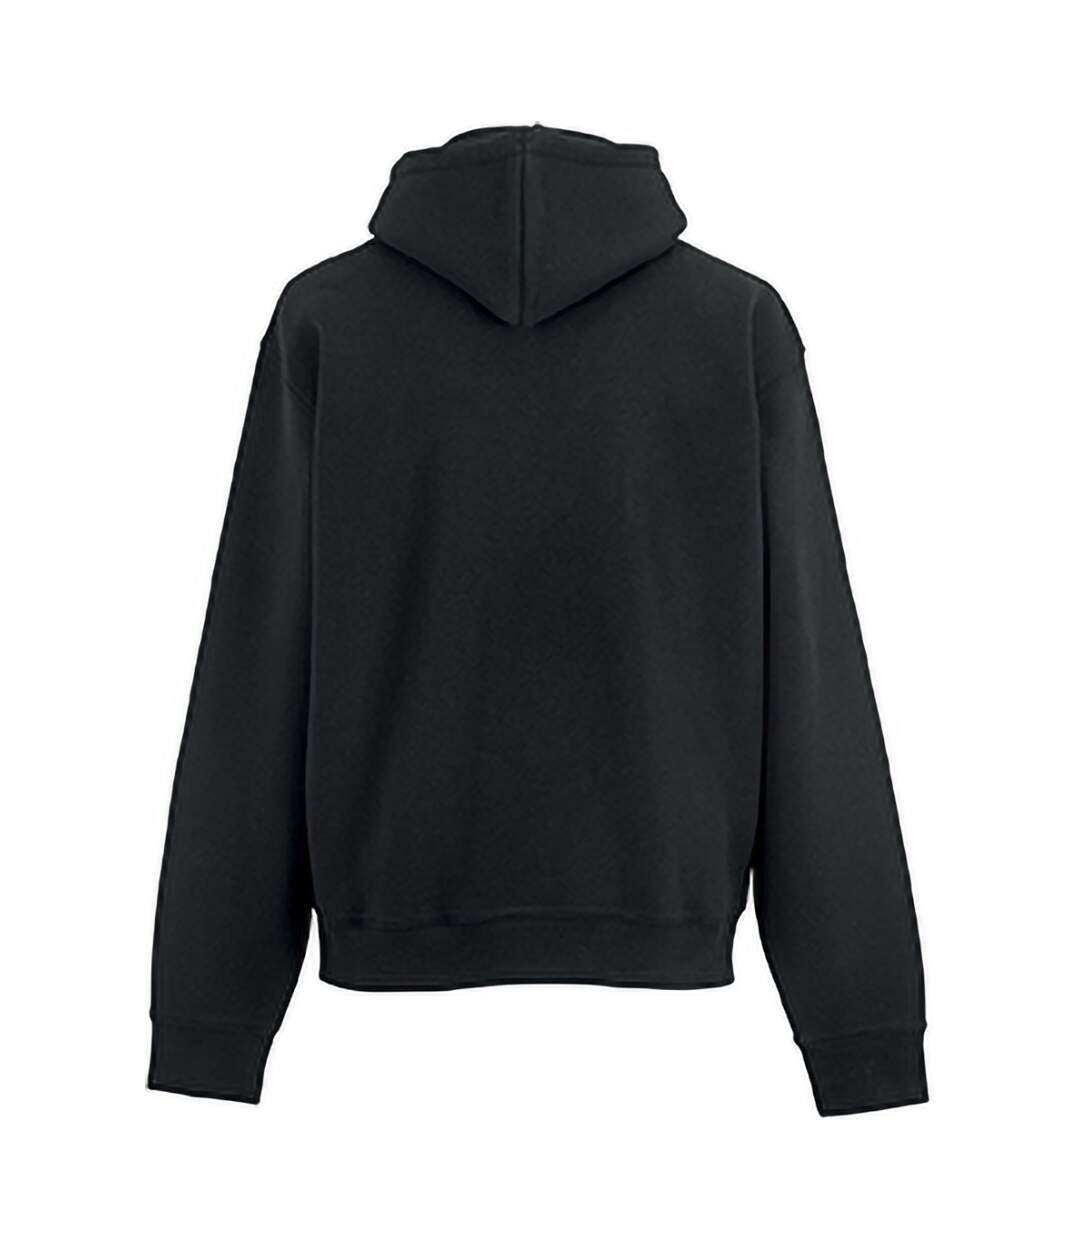 Russell Mens Authentic Hooded Sweatshirt / Hoodie (Black) - UTBC1498